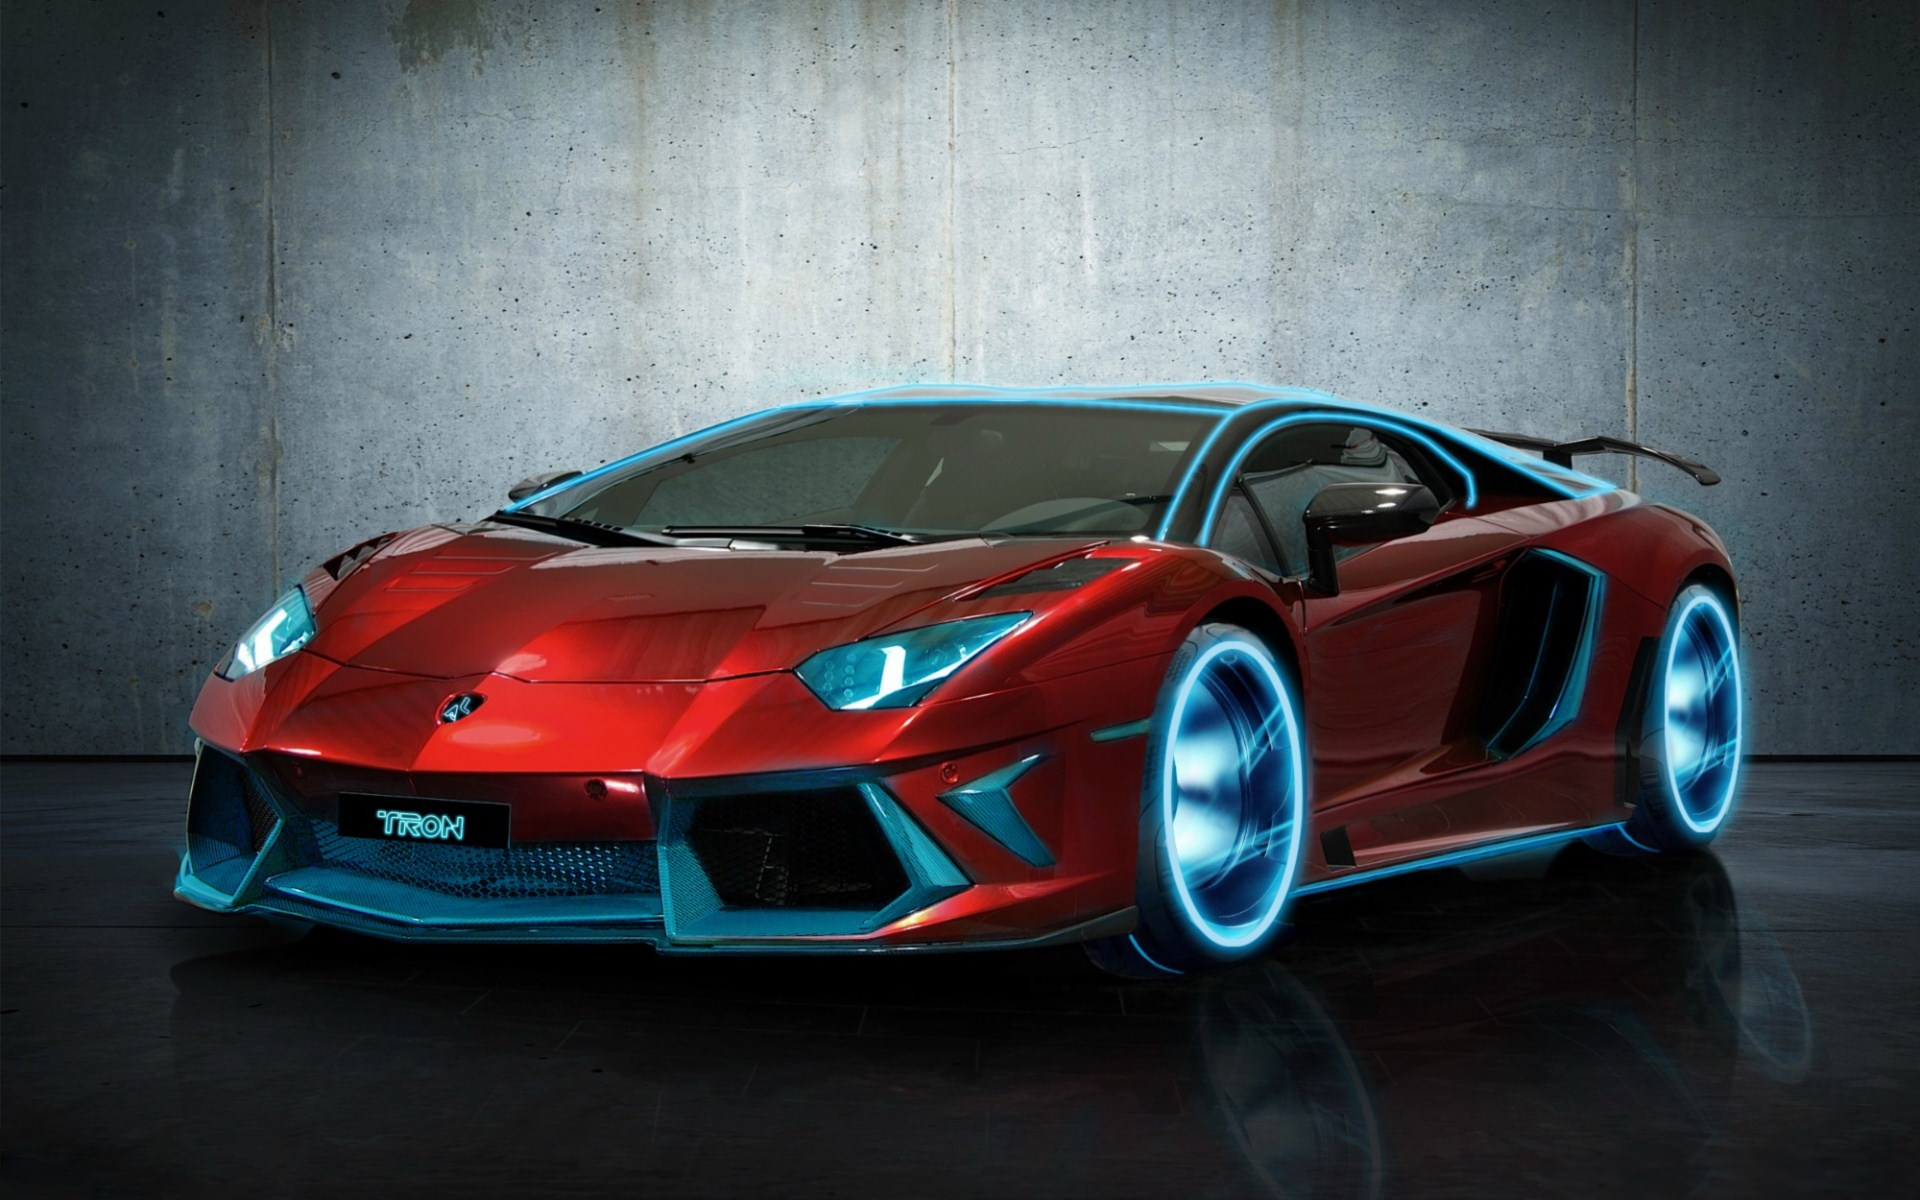 Red Lamborghini With Blue Illumination 4235555 1920x1200 All For